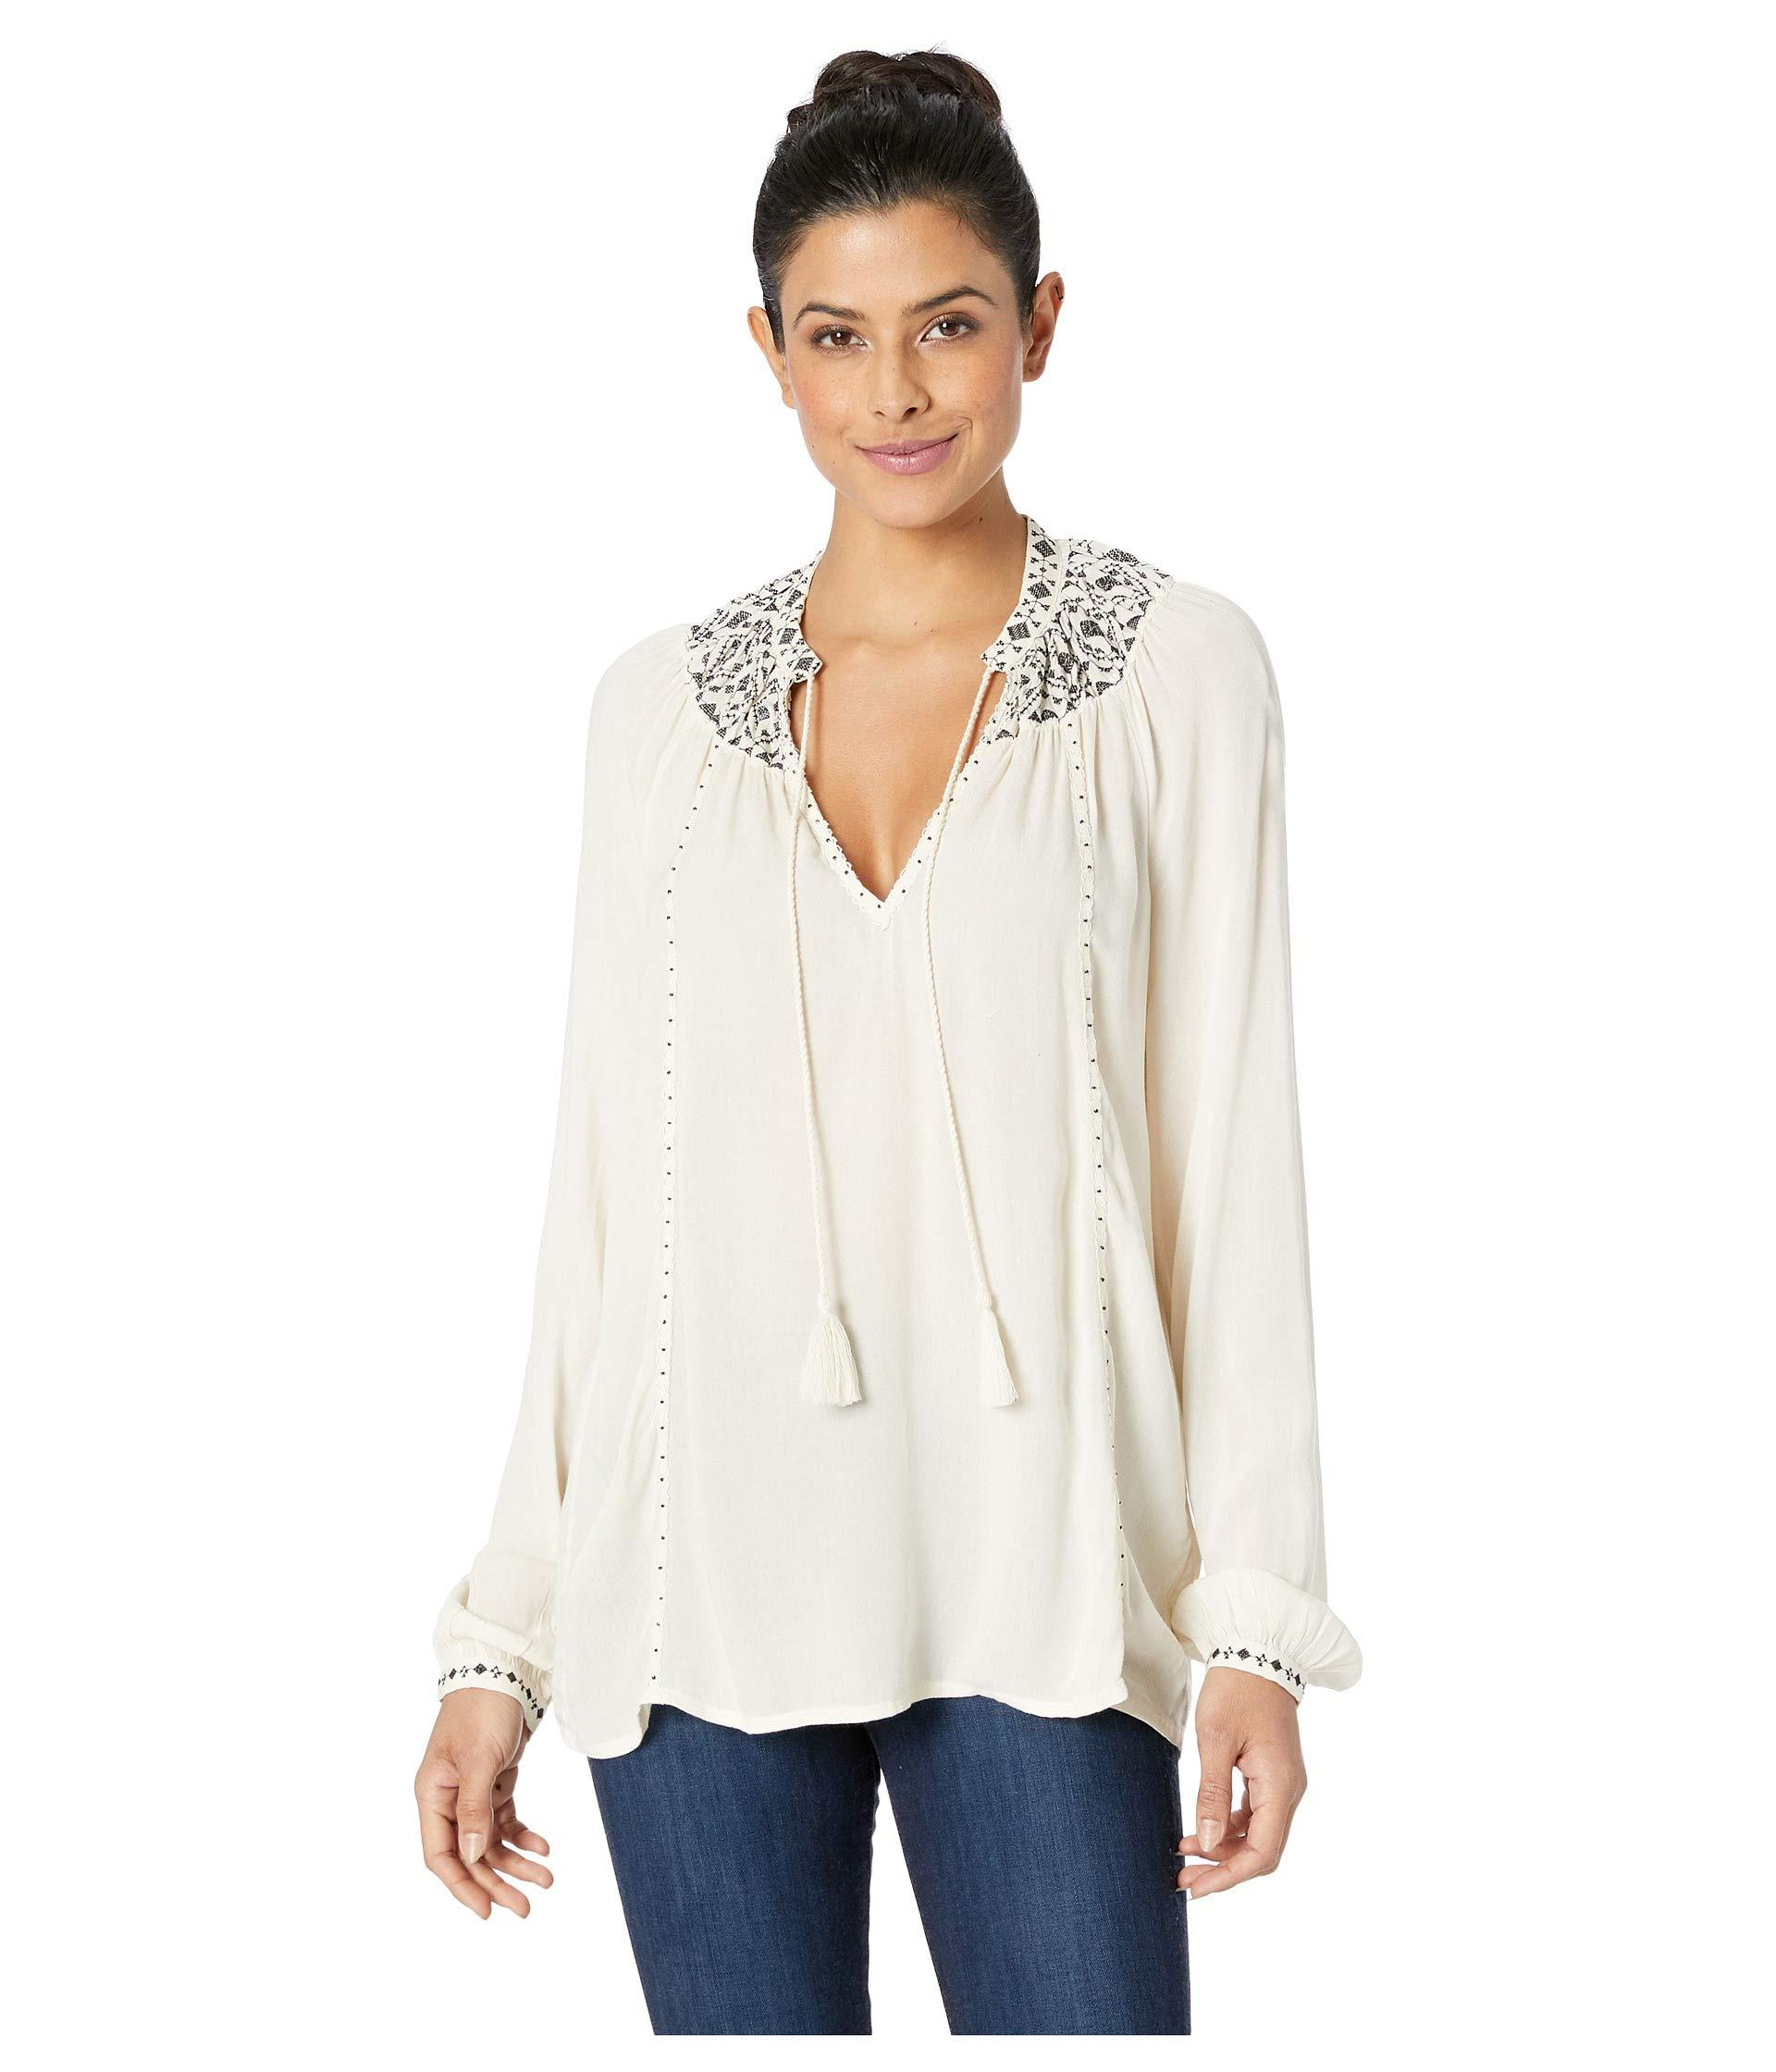 843f376bda270 Lyst - Lucky Brand Embroidered Peasant Top in White